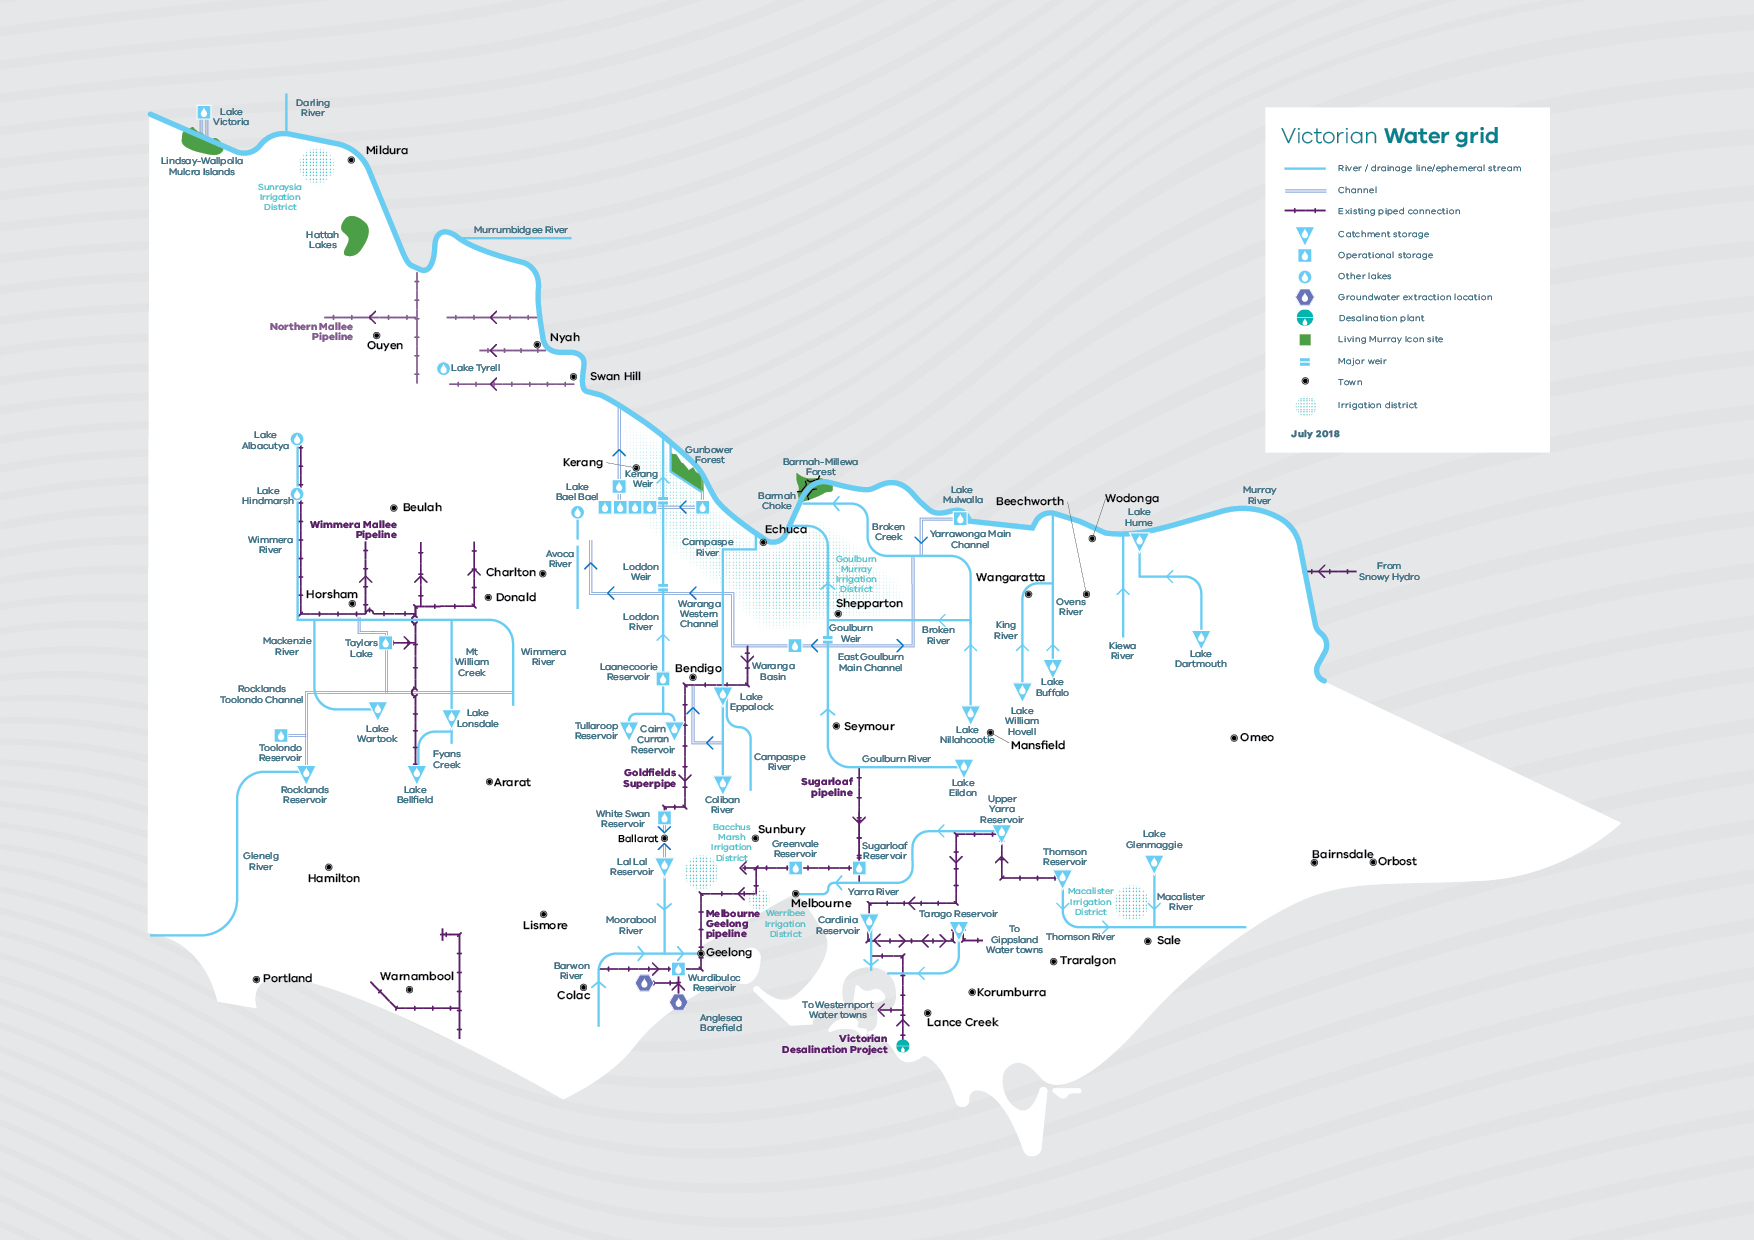 Image of Victoria's water grid and water market which allows water users to move water in connected systems to where it is needed most.